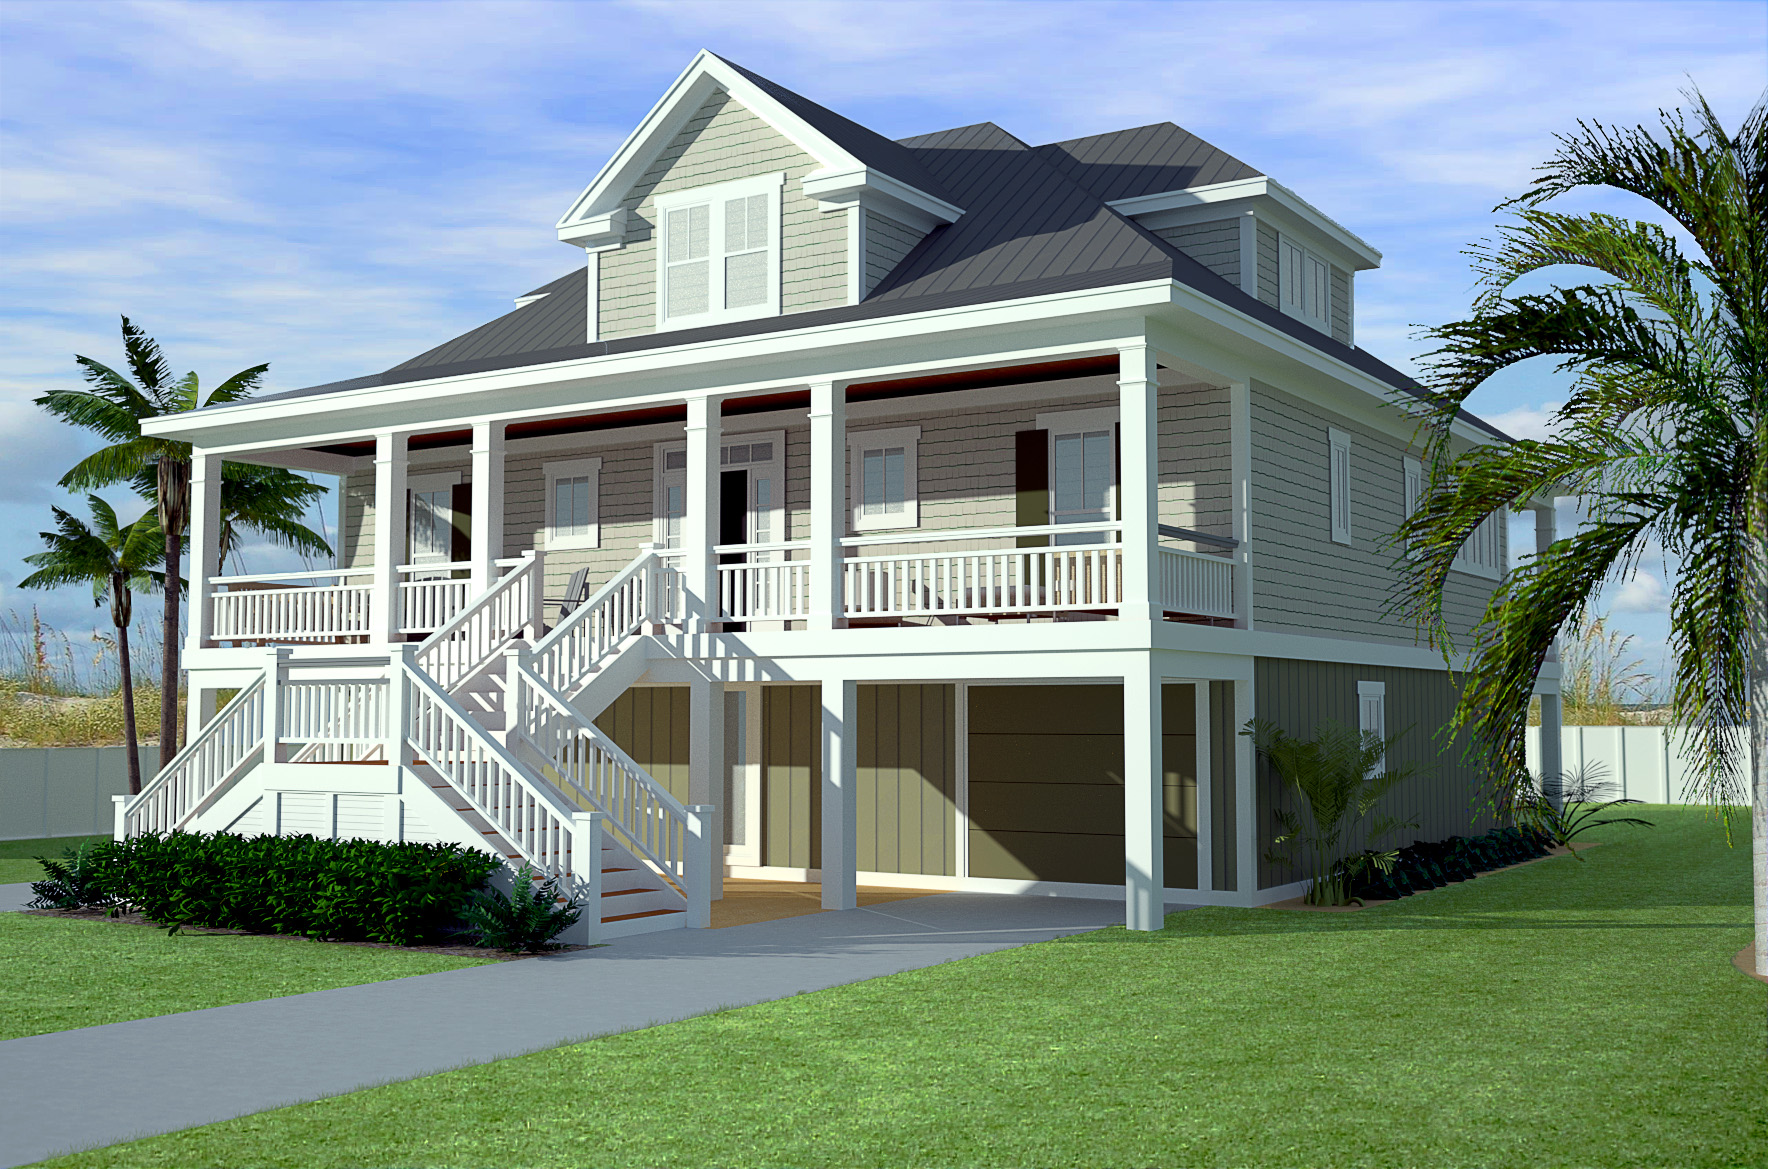 Stylish low country home plan 15062nc 1st floor master for Low country homes